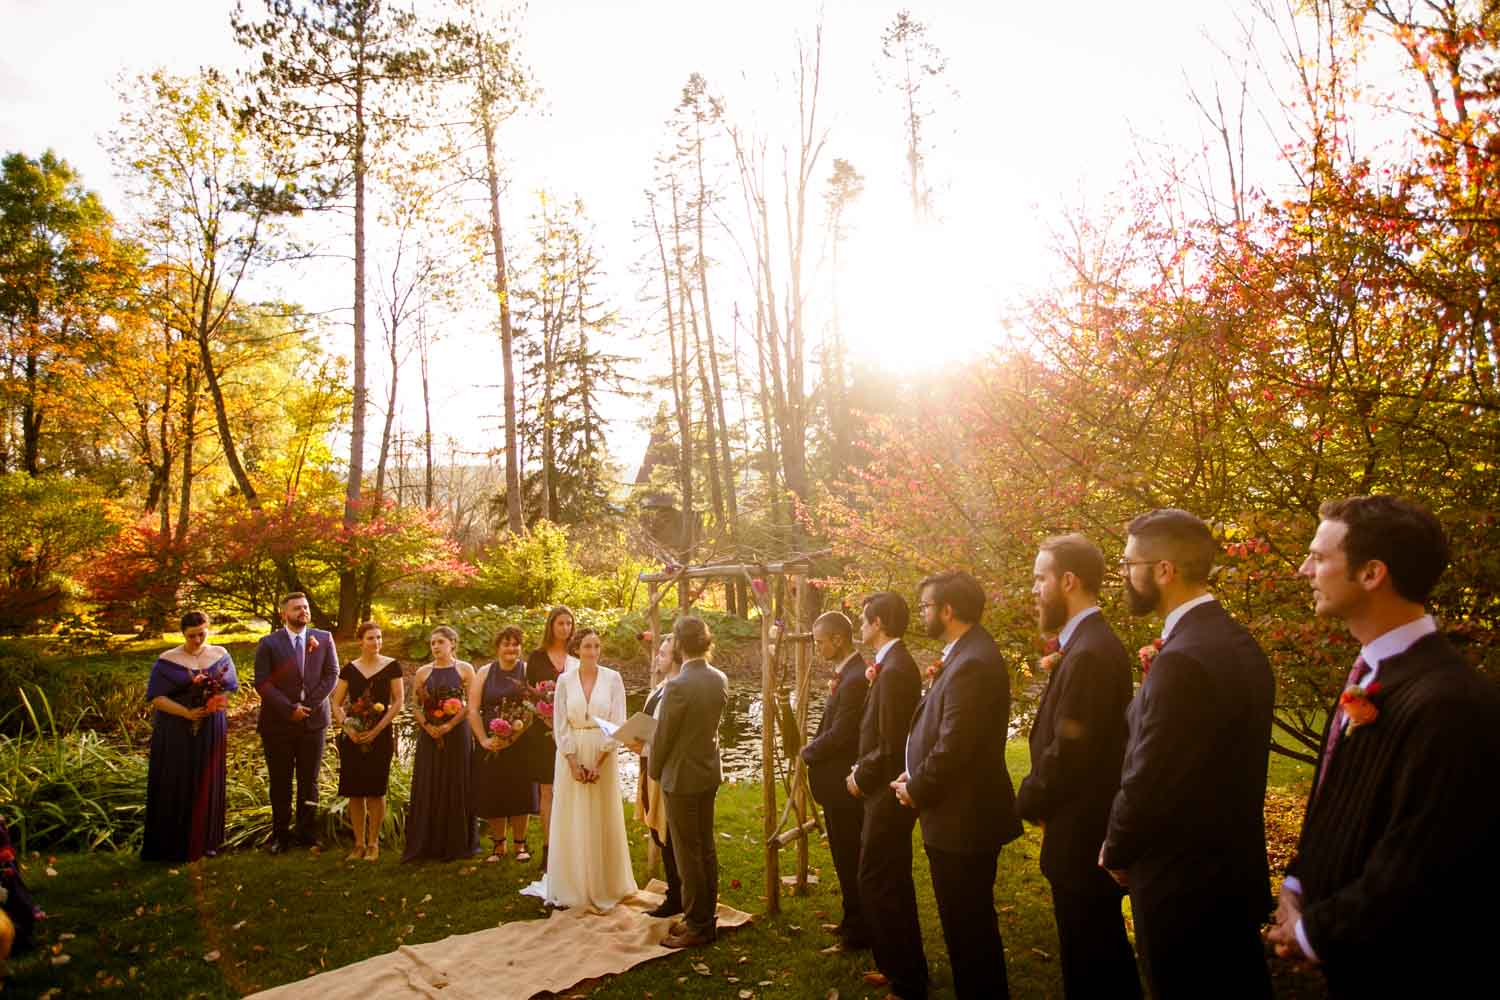 ct-wedding-photographers-49.jpg